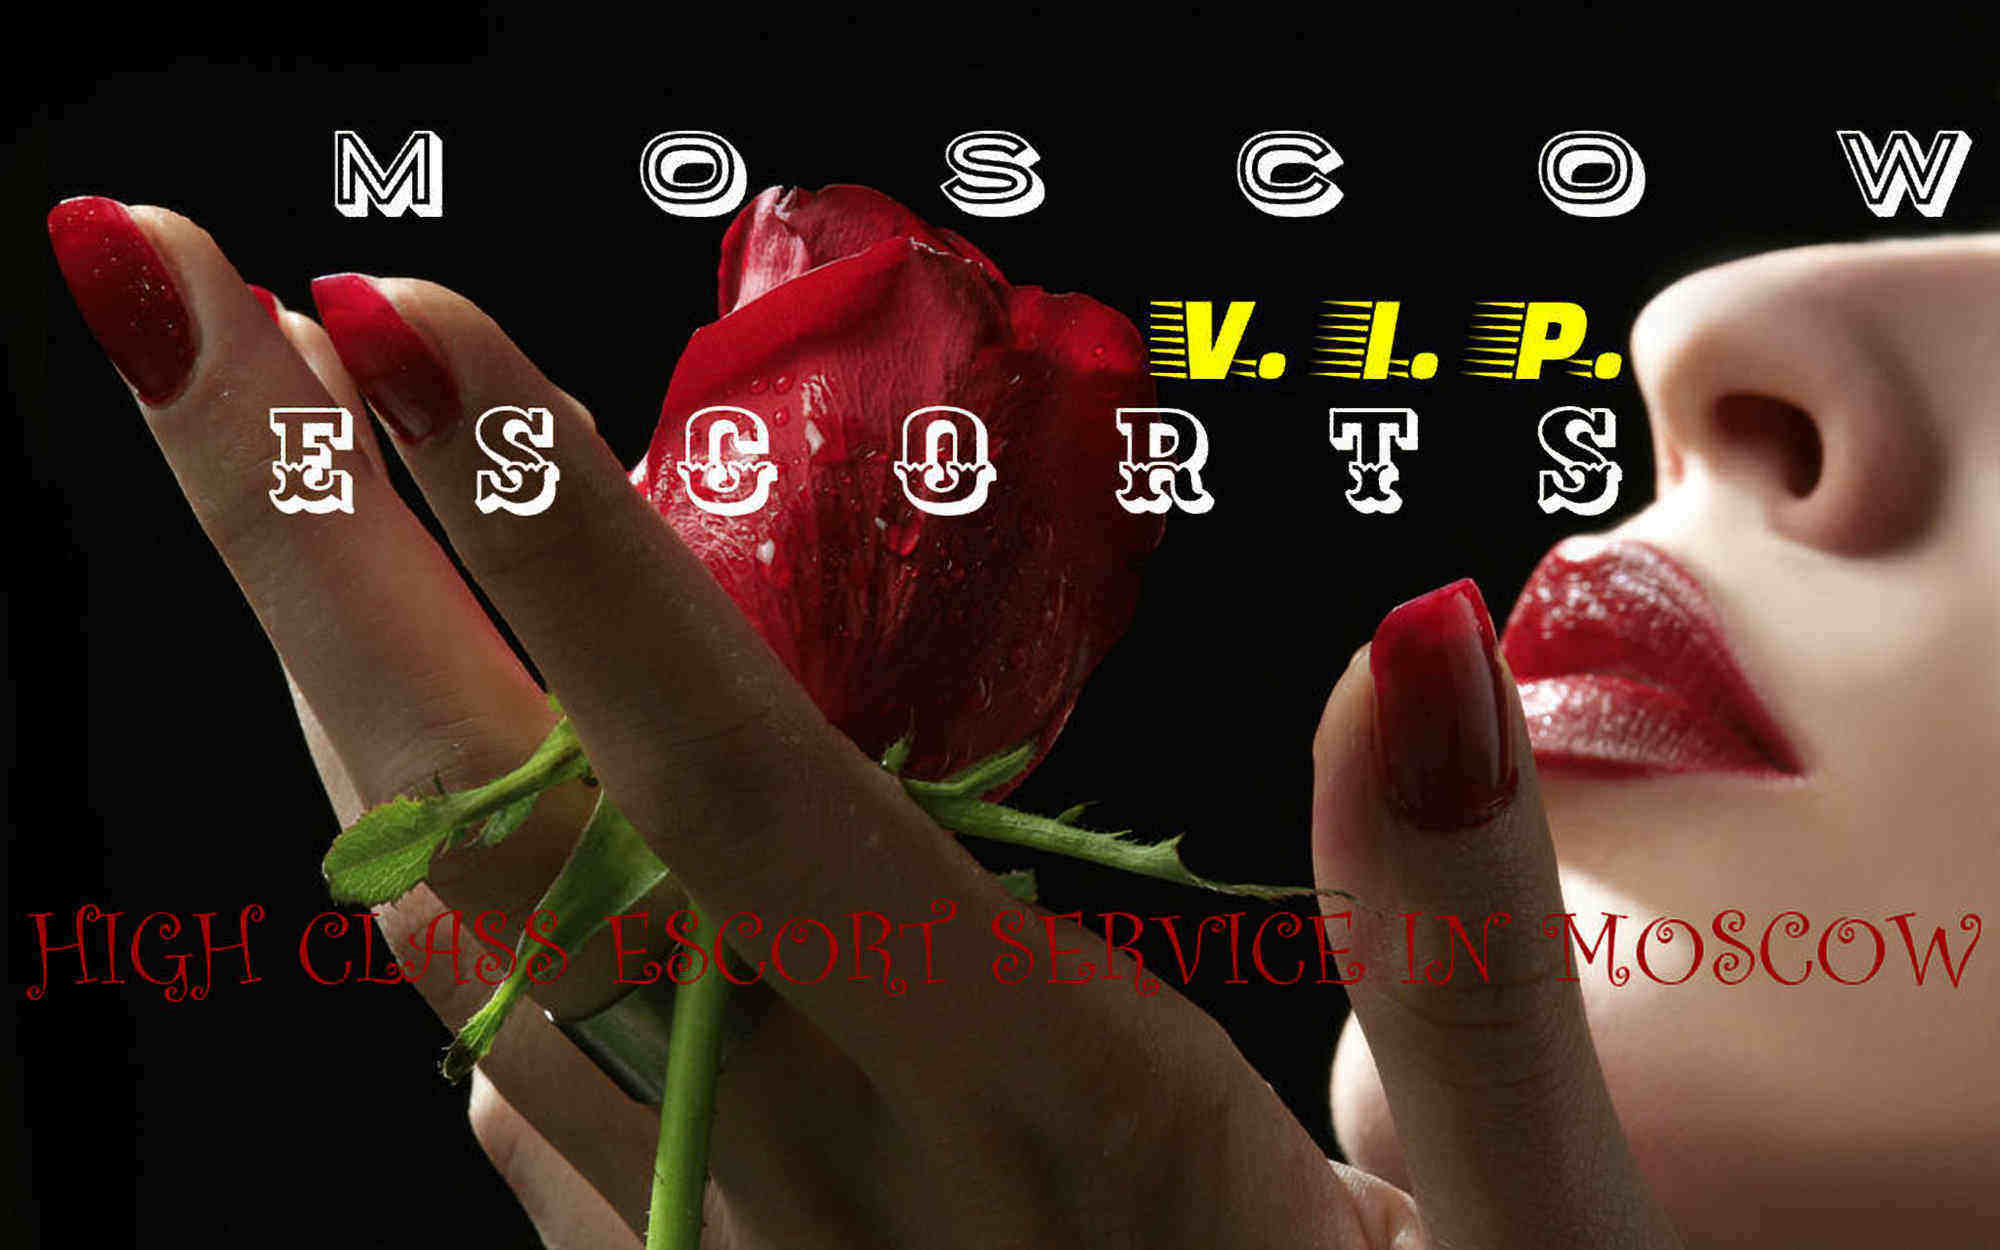 moscow escorts